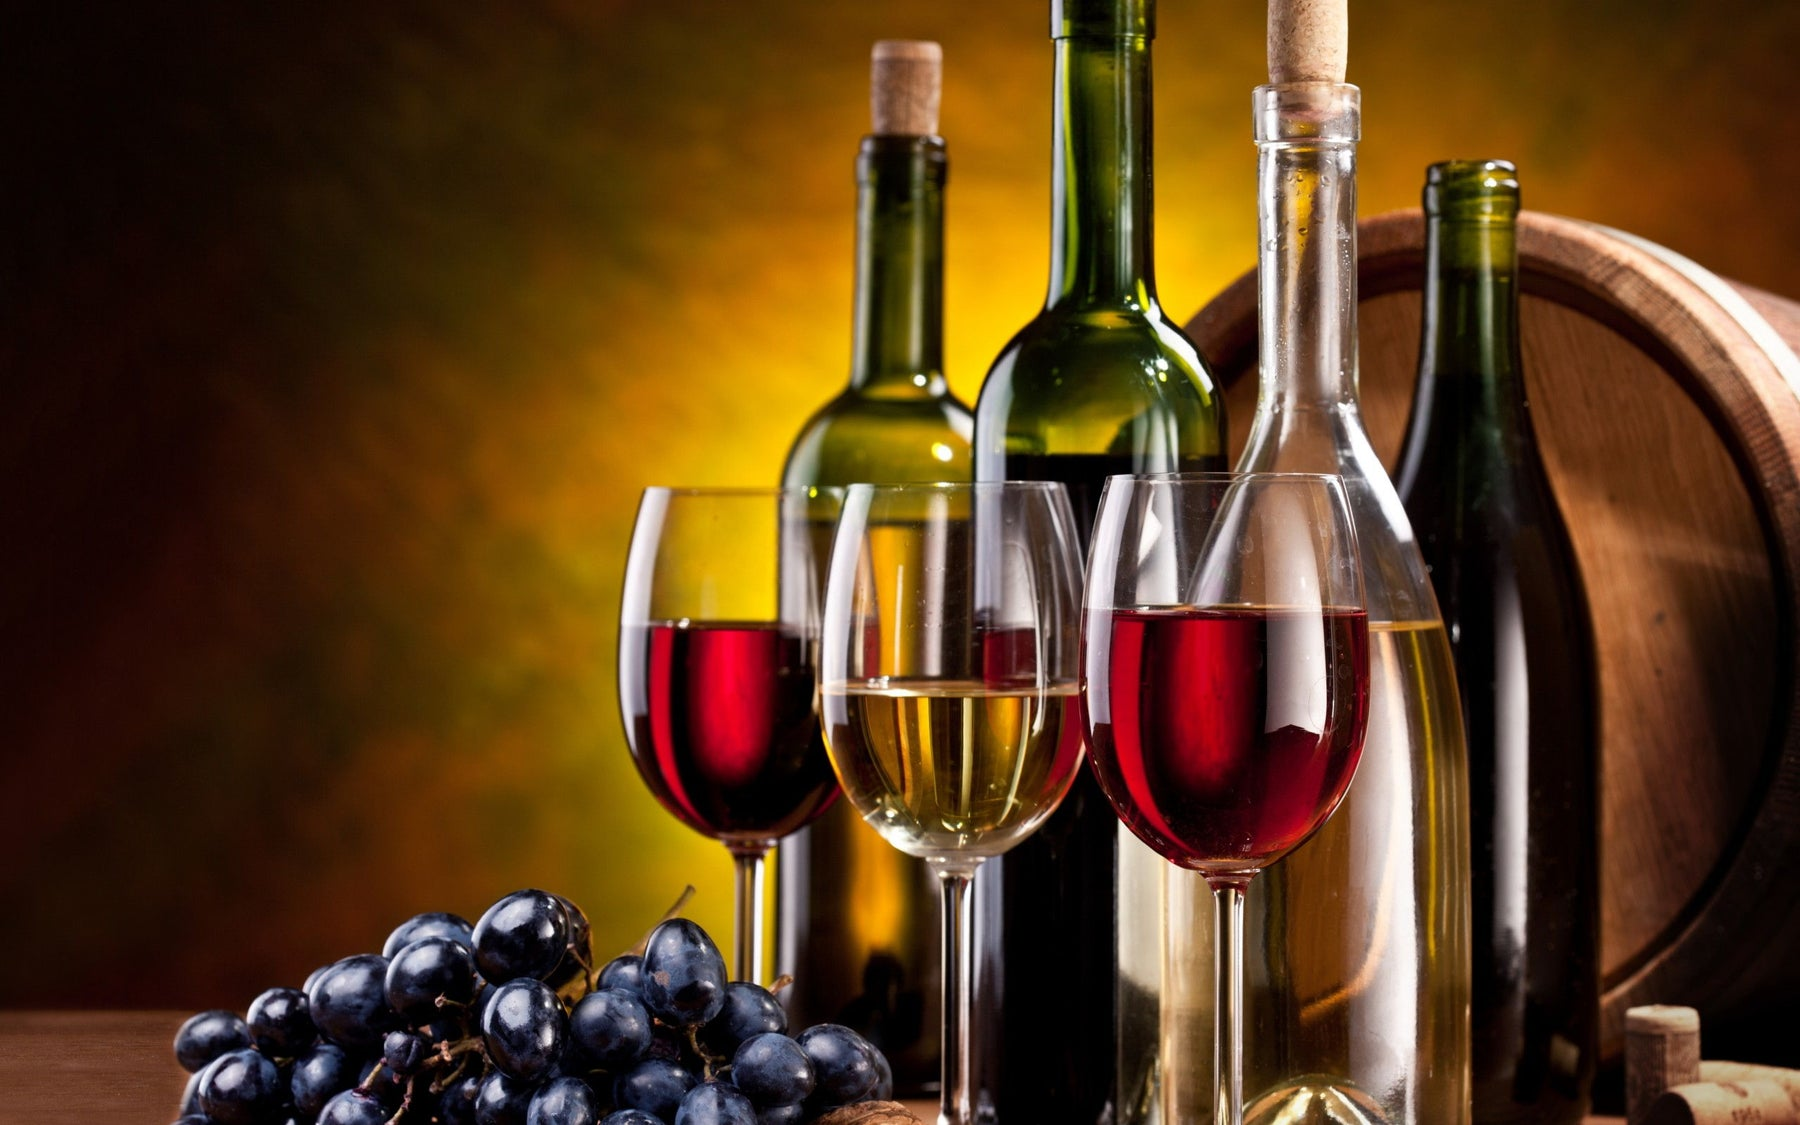 Less Sulphites in Craft Produced Wine